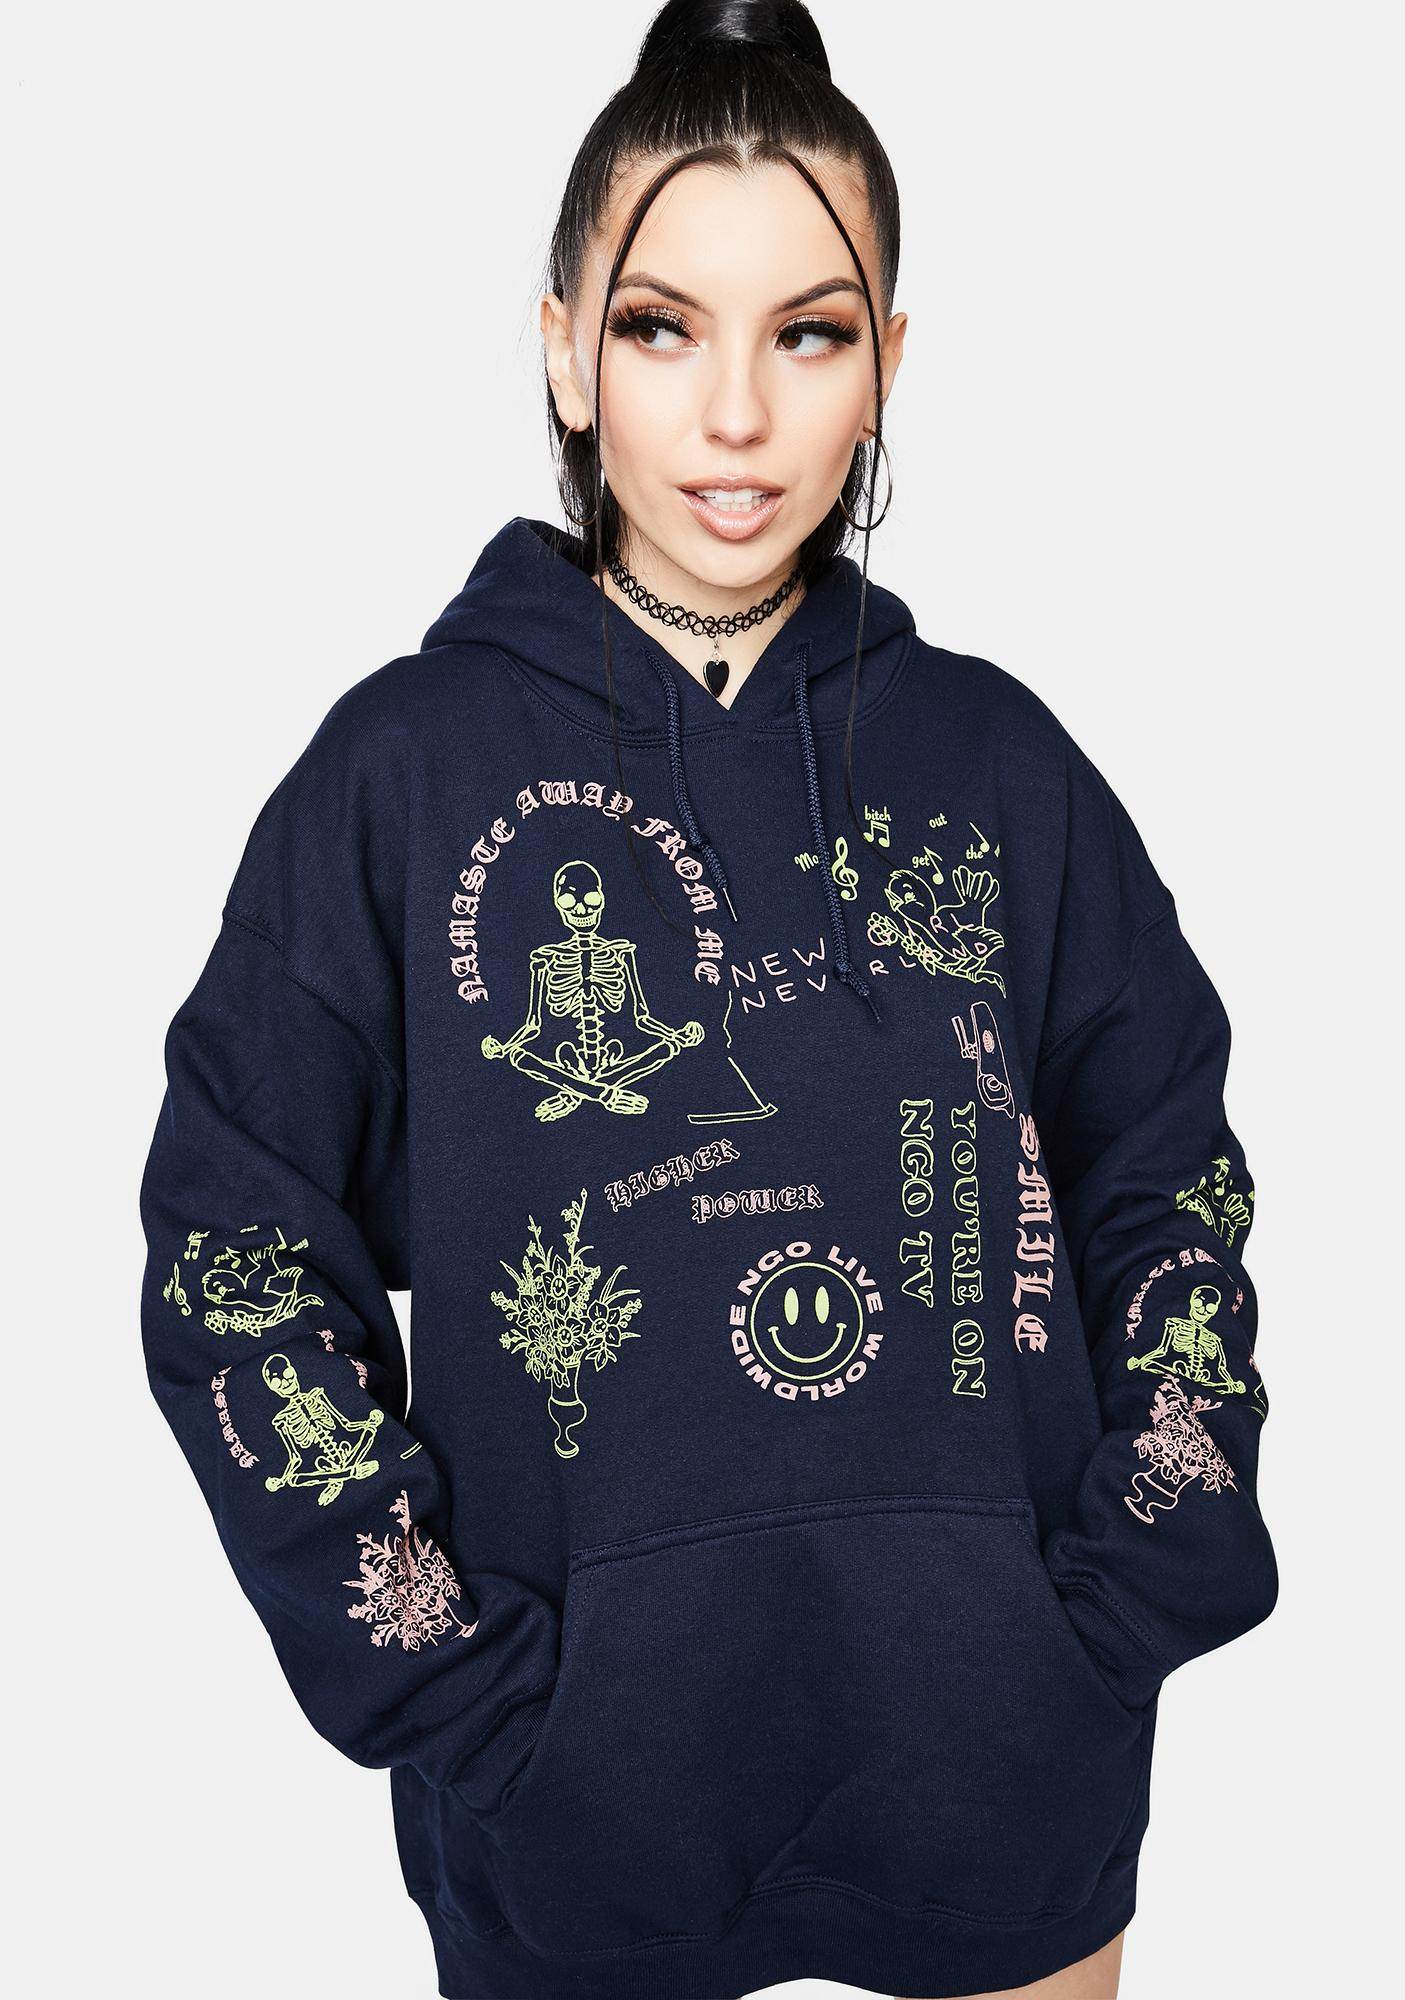 NEW GIRL ORDER Fantasy Land Graphic Hoodie